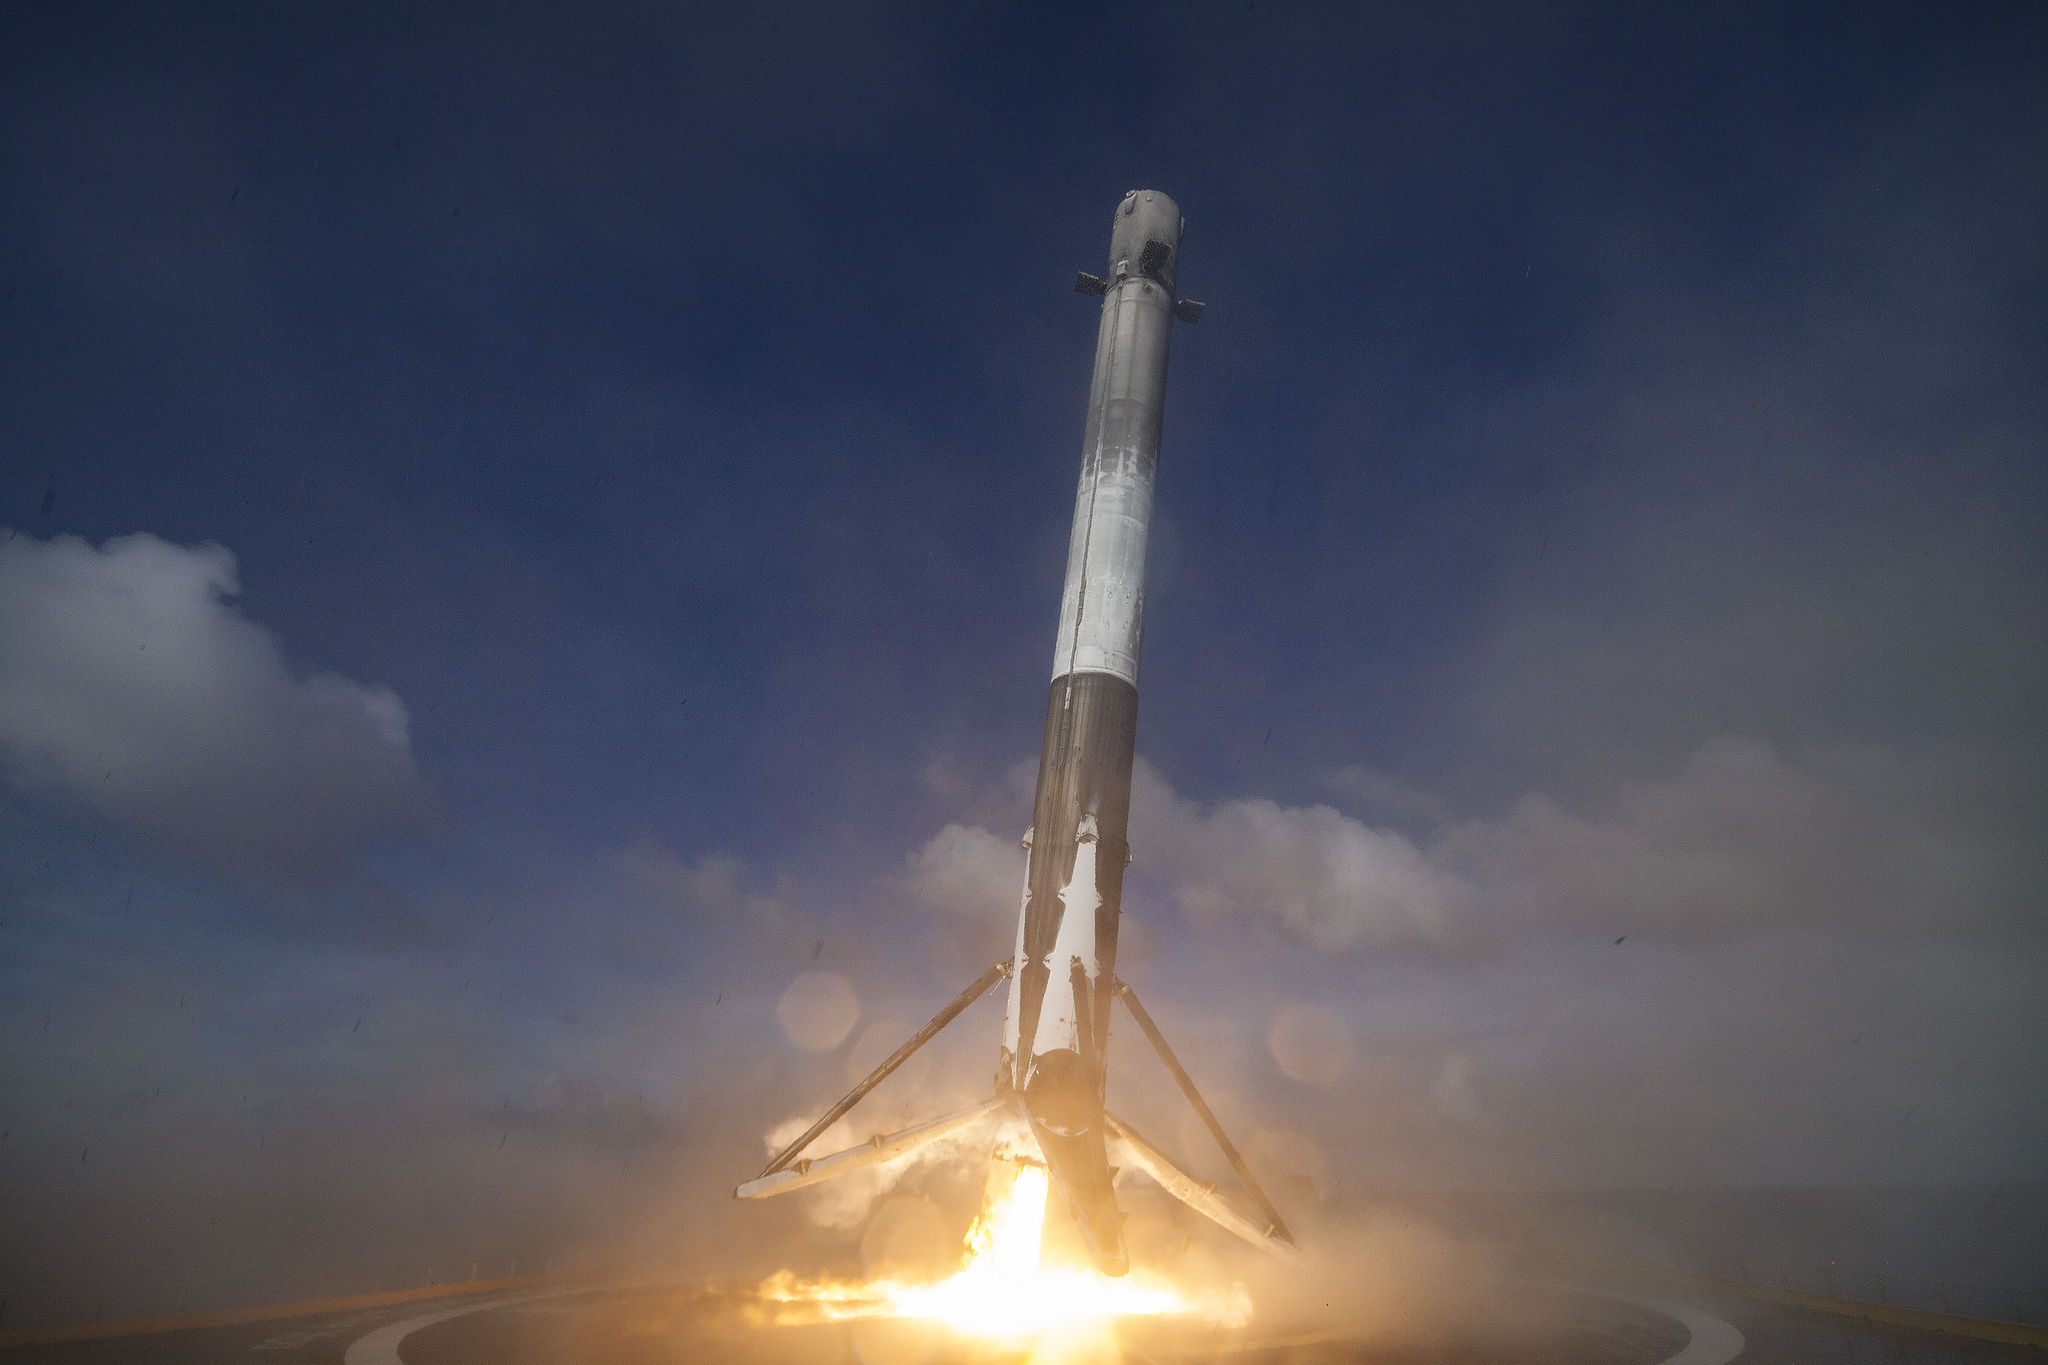 SpaceX Falcon 9 Rocket Landing After Launching Thaicom 8